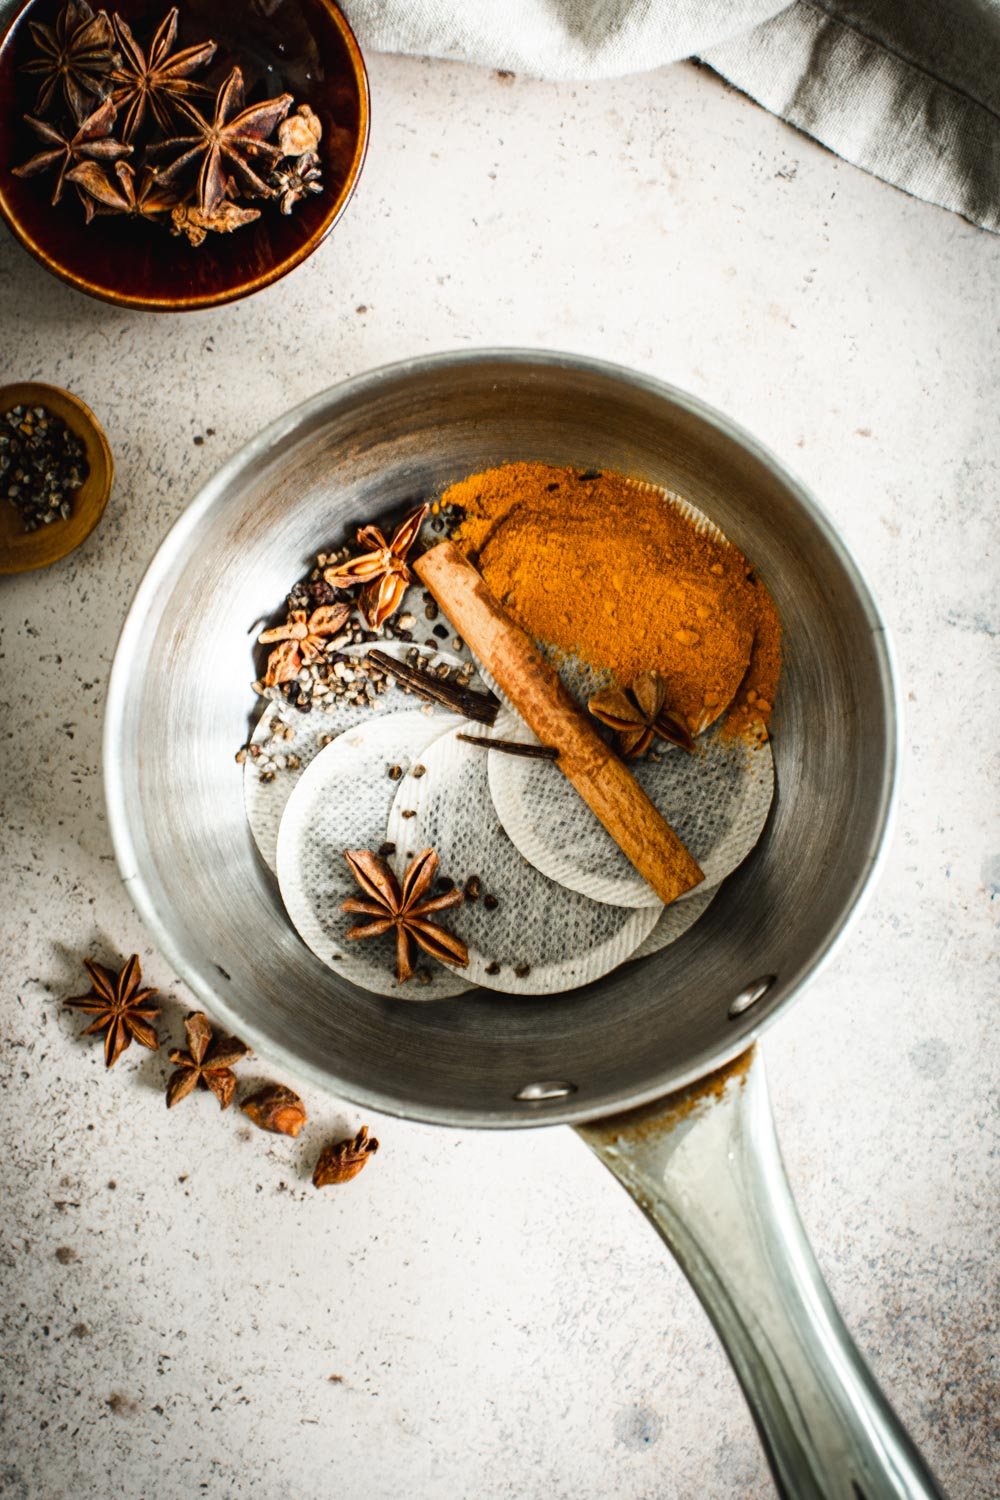 Ingredients for Thai tea in a small saucepan.